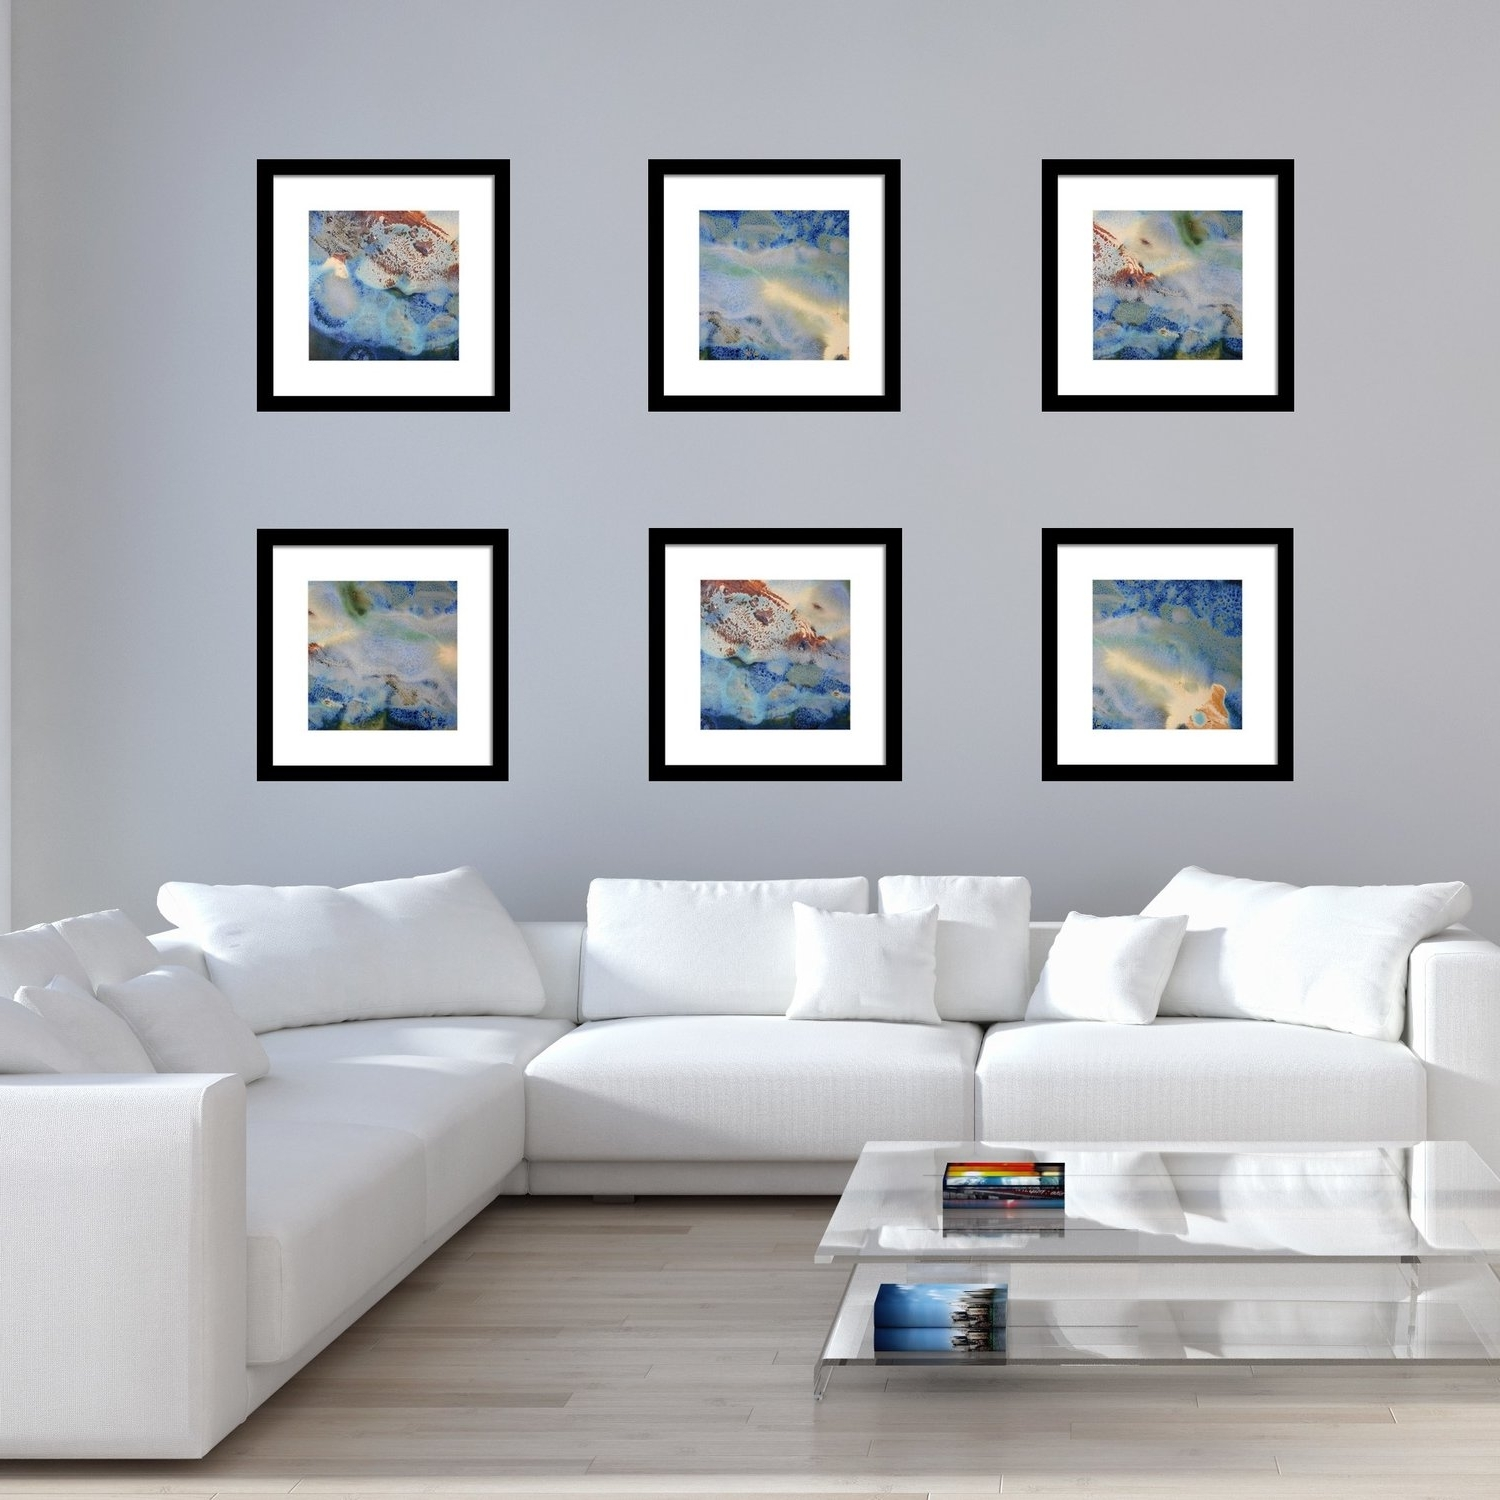 Recent Abstract Framed Art Prints Regarding Set Of 6 Abstract Framed Prints – Square #17, 18 & 19 (Gallery 15 of 15)